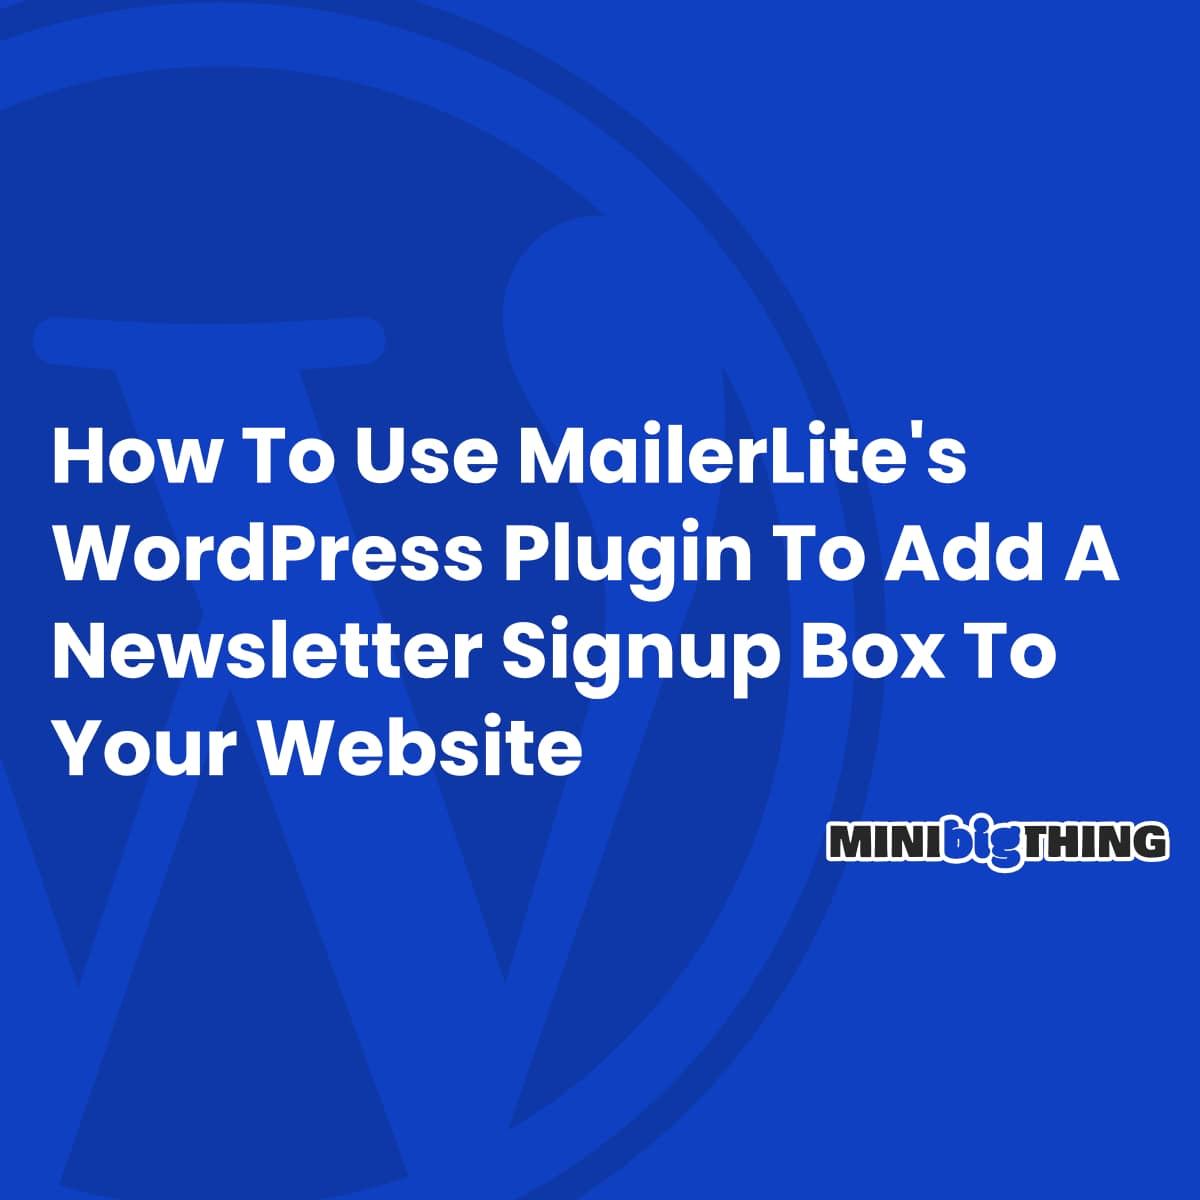 How To Use Mailerlite's Wordpress Plugin To Add A Newsletter Signup Box To Your Website